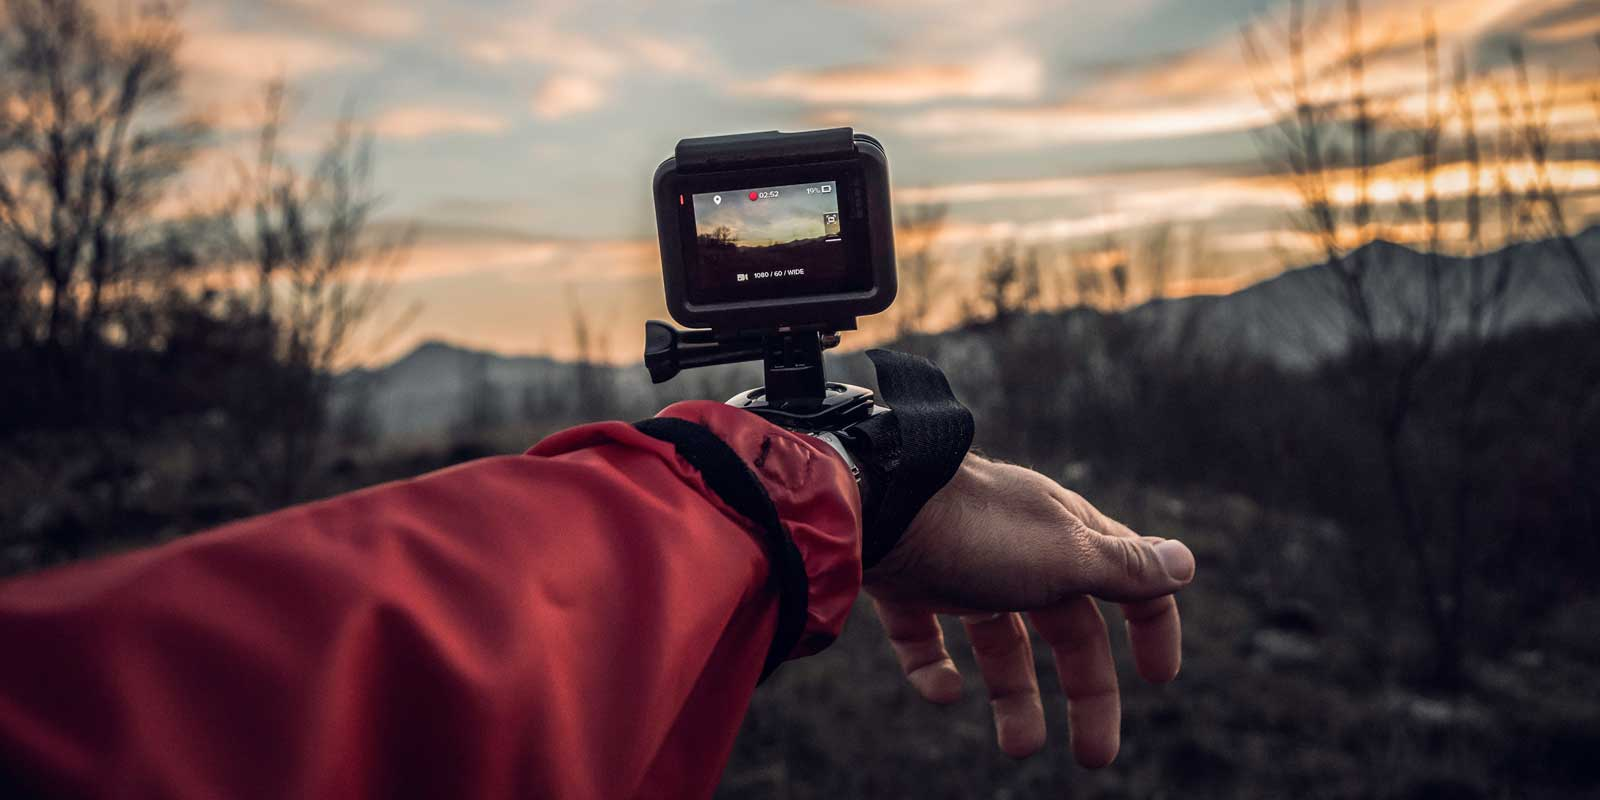 Check out these GoPro accessories (over 60!) to help you get awesome travel photos and video.